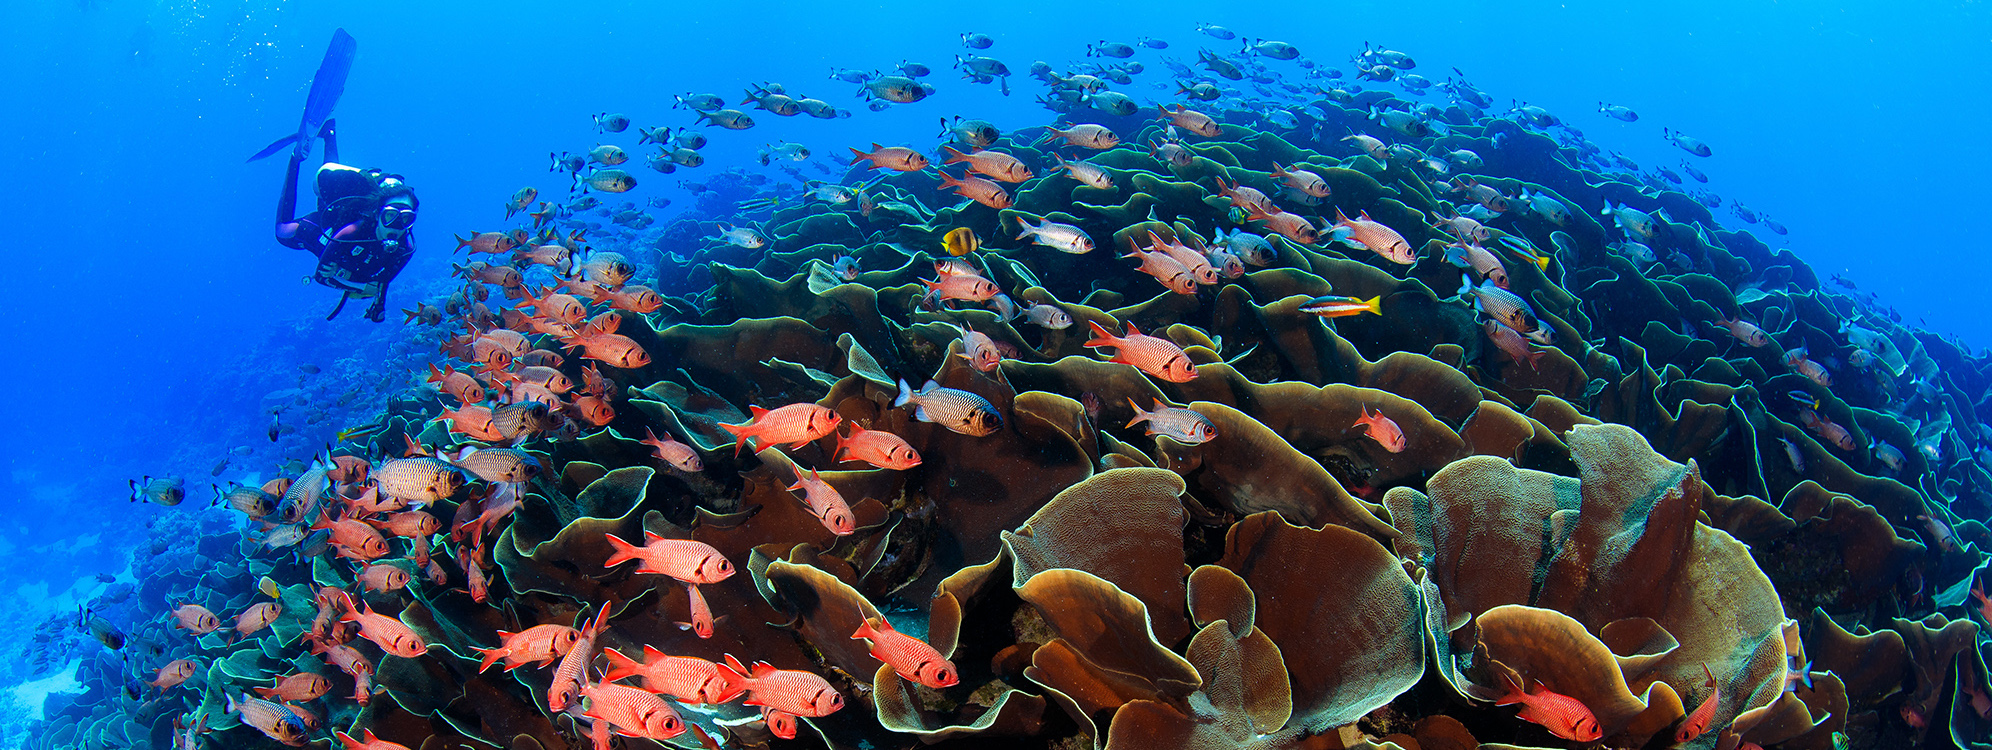 Scuba diver swimming with a colorful school of fish around coral.